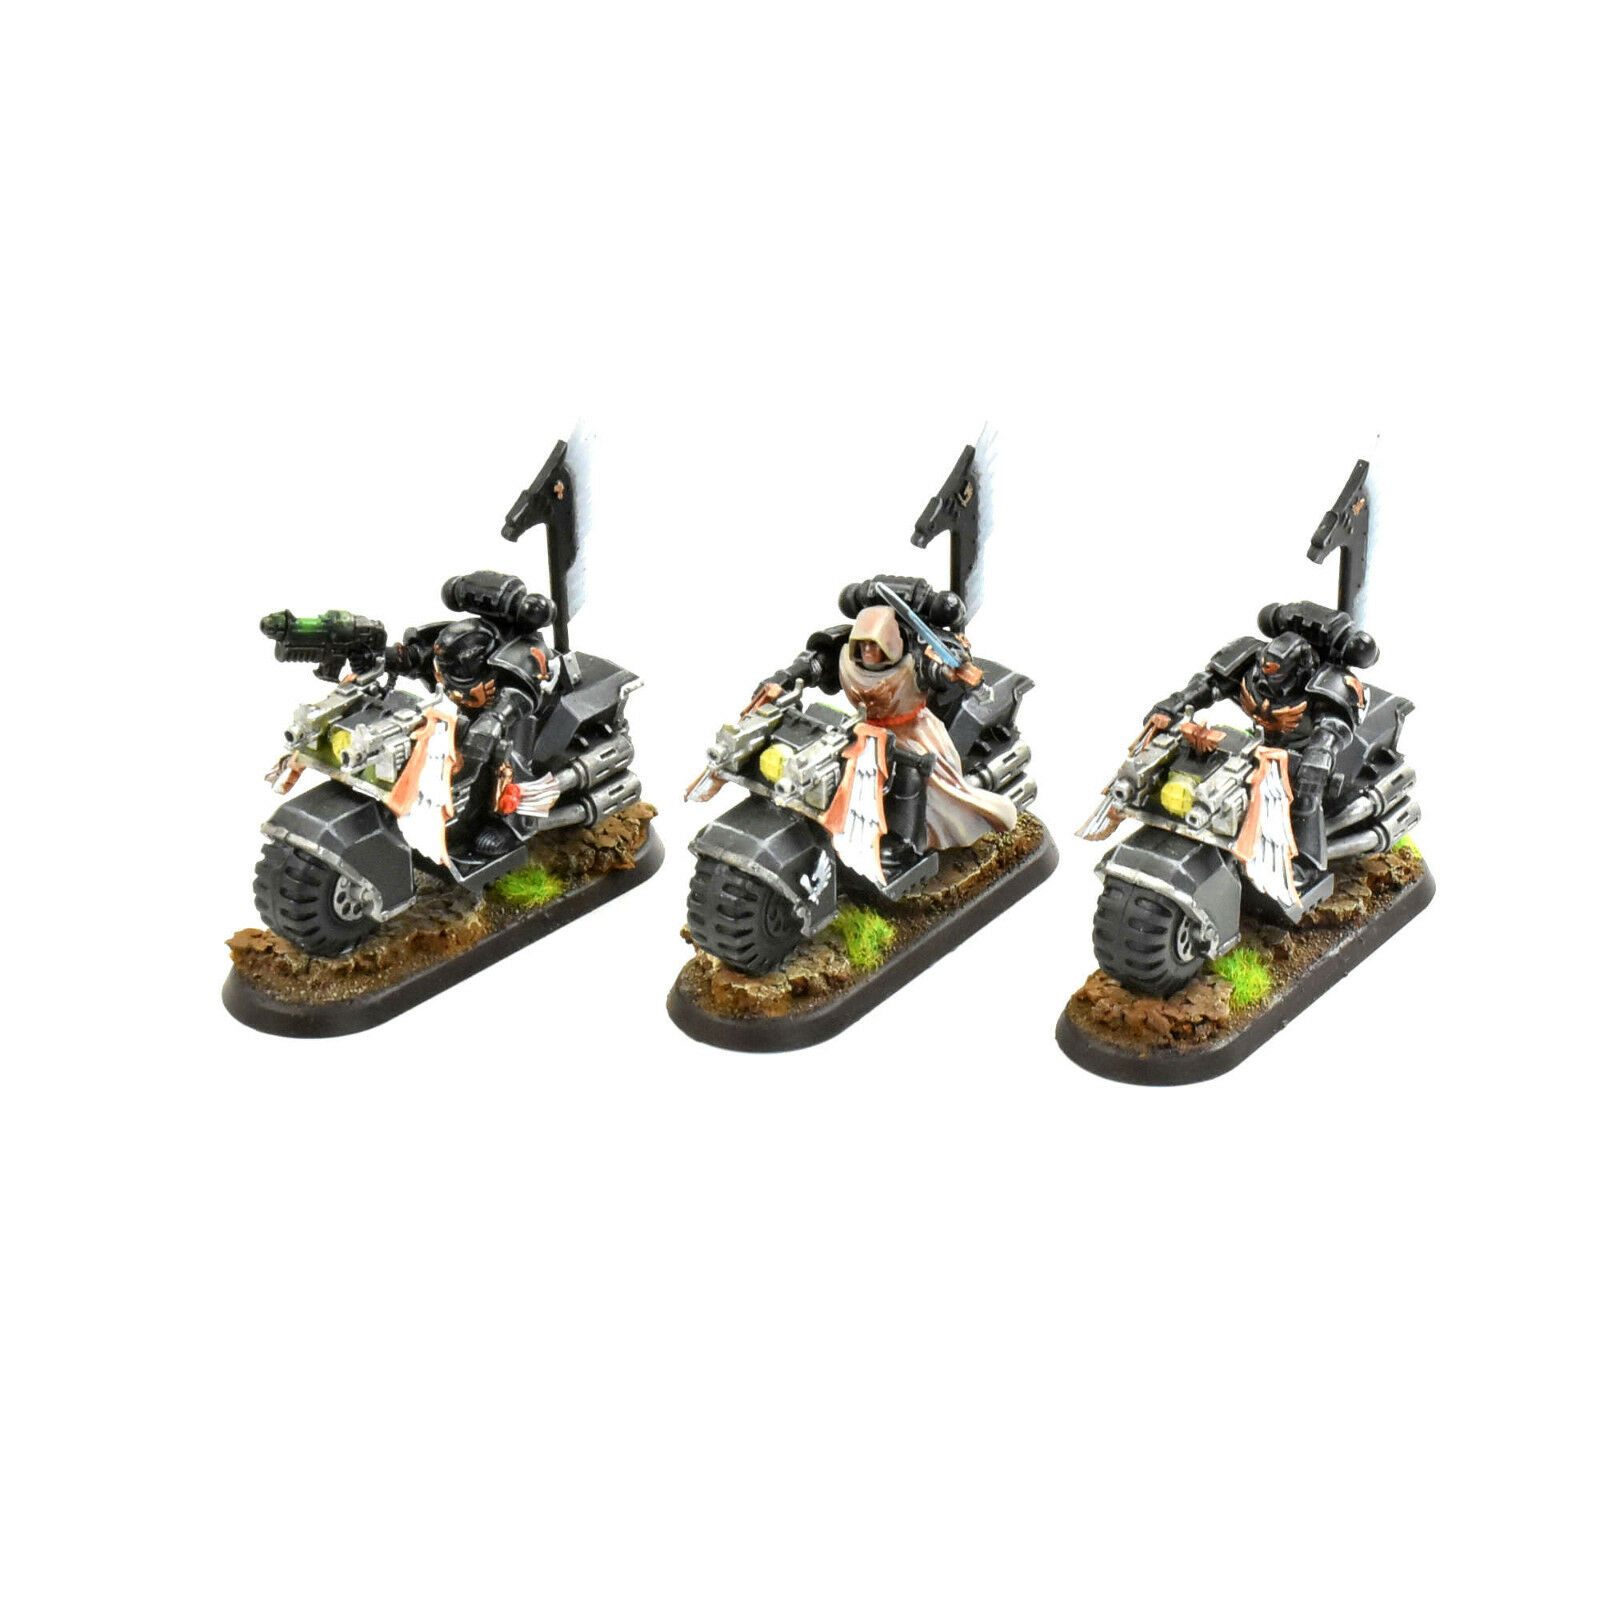 DARK ANGELS Ravenwing bike squadron bikers PRO PAINTED Warhammer 40K